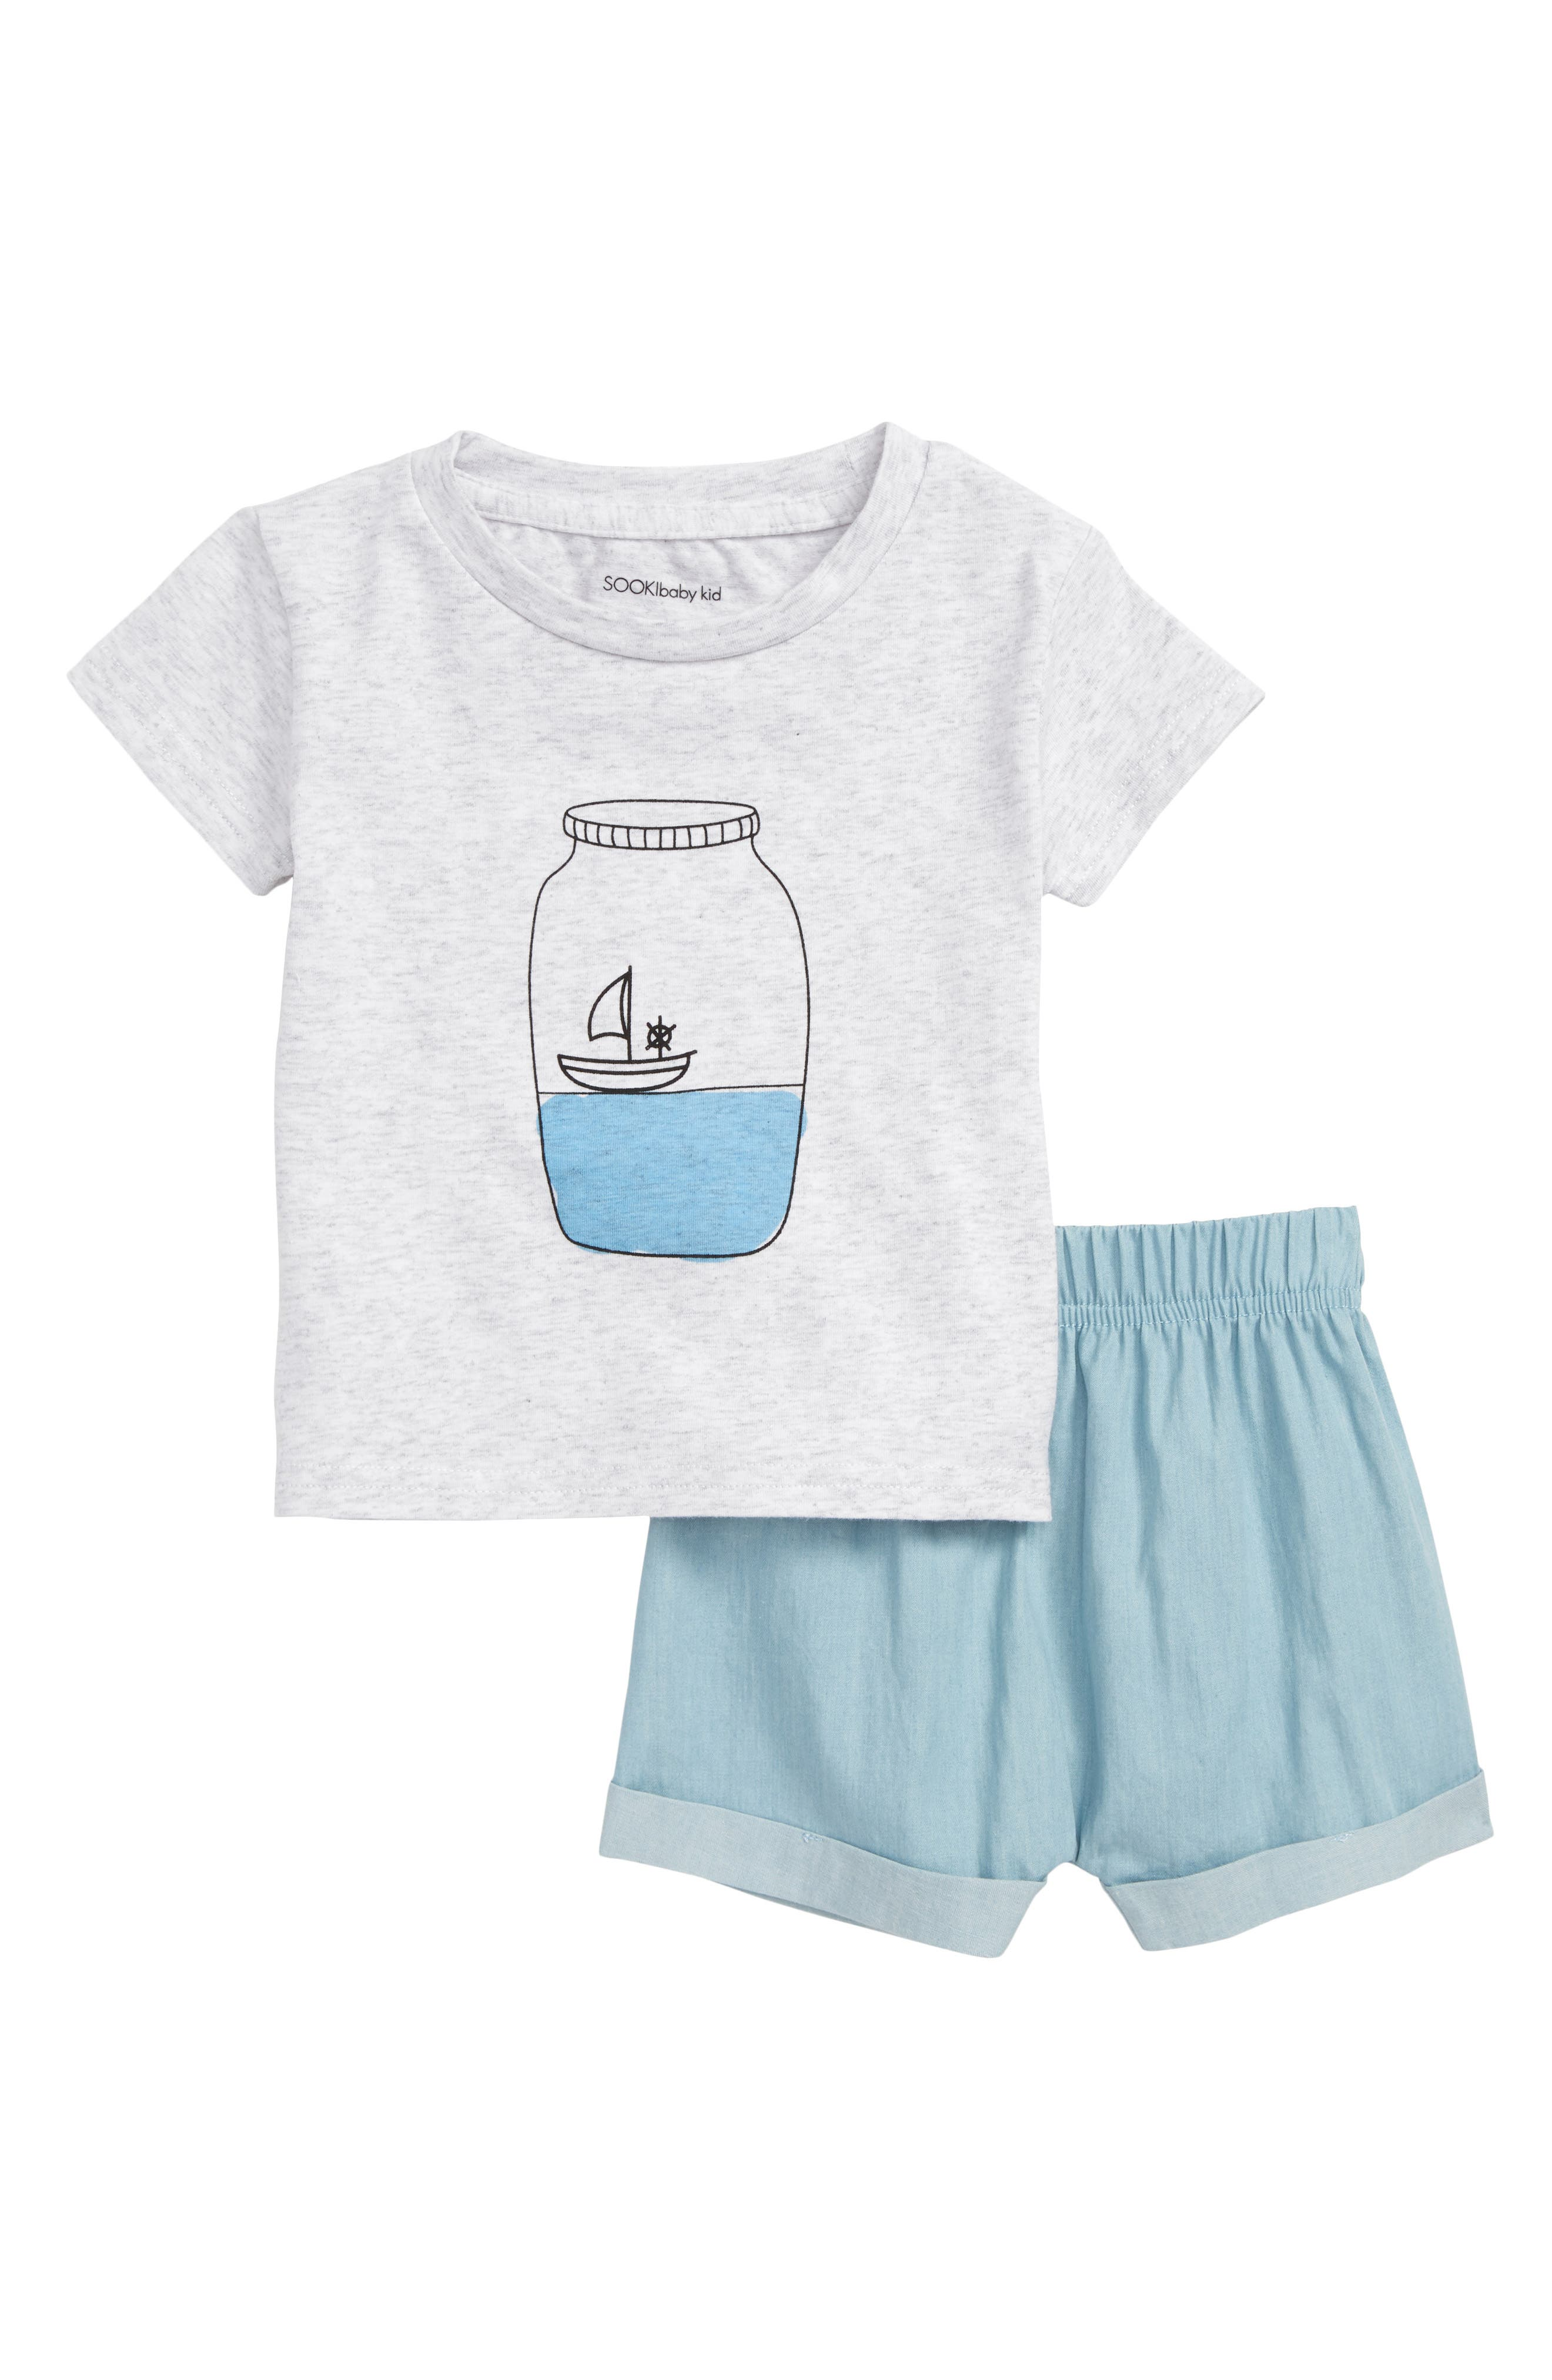 Message In a Bottle Shirt & Chambray Shorts Set,                             Main thumbnail 1, color,                             029